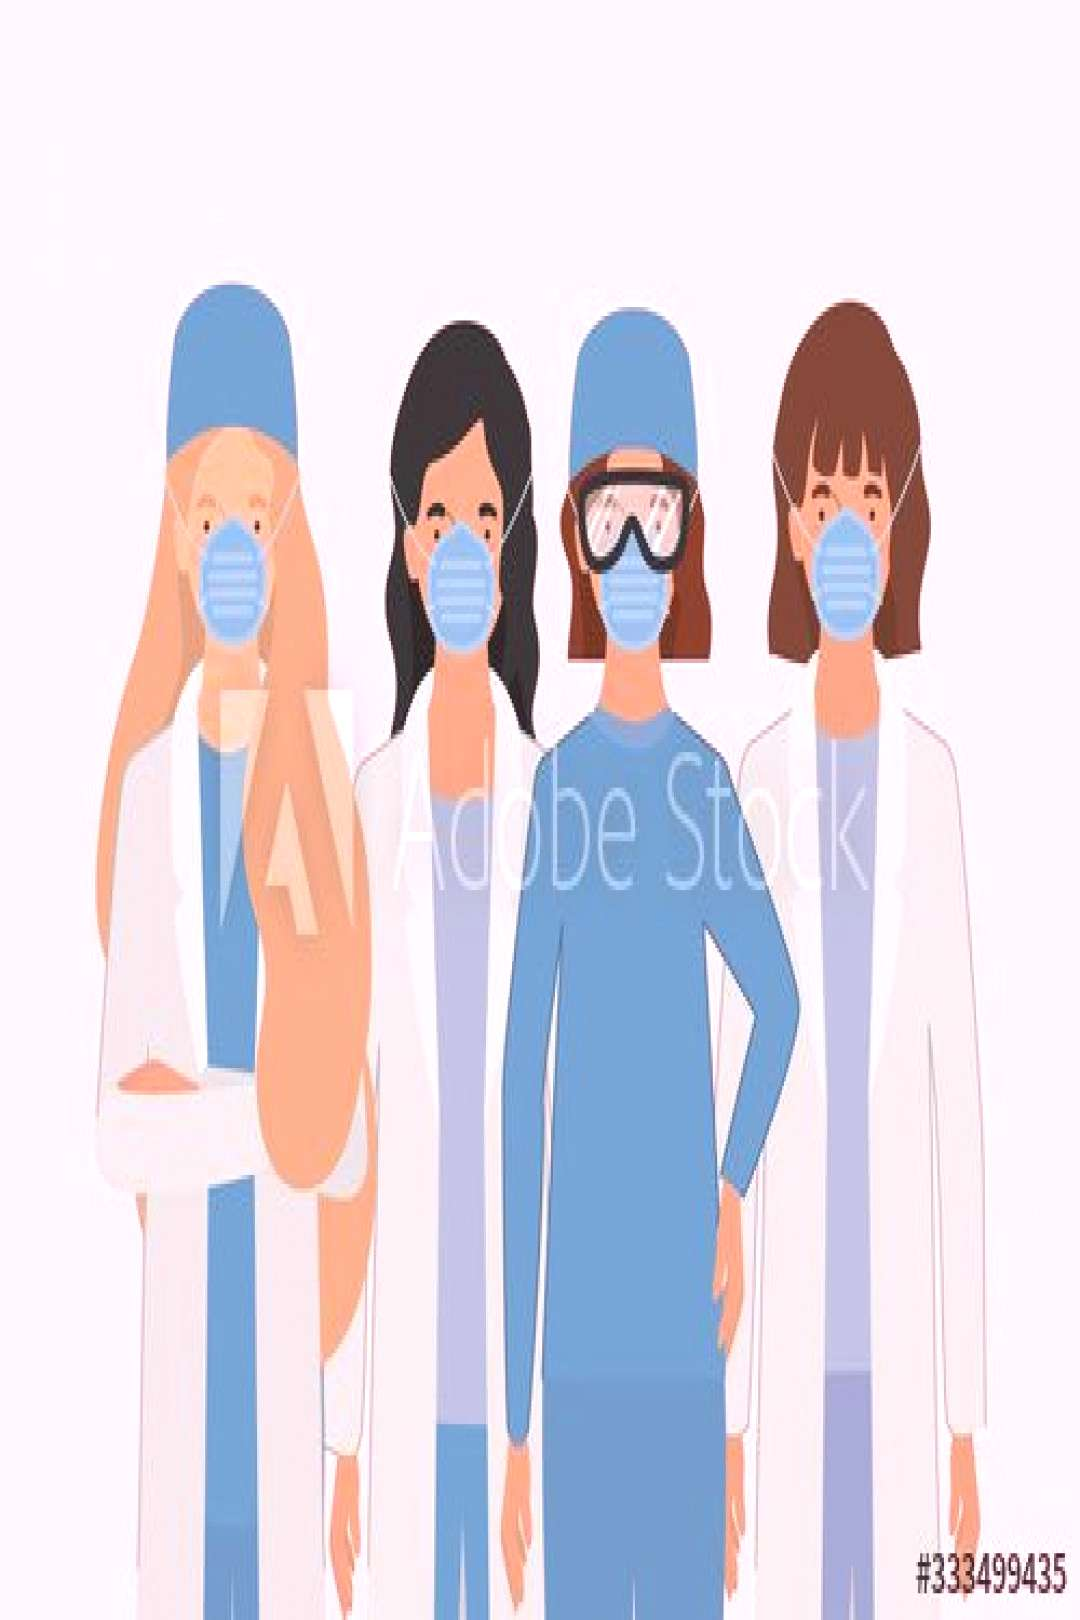 Women doctors with uniforms masks and glasses vector design ,